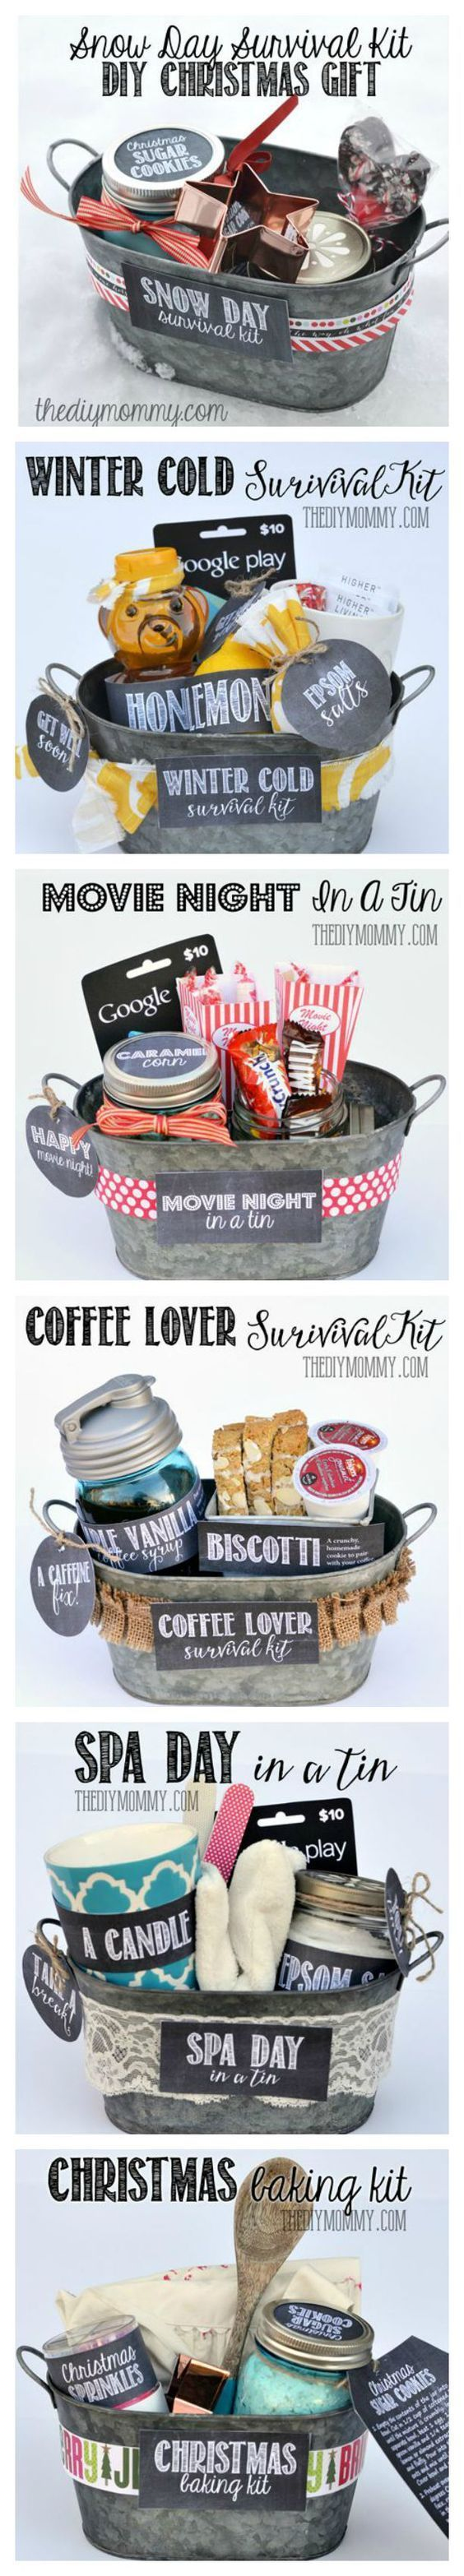 6 DIY Gifts in a Tin Ideas via The DIY Mommy - Do it Yourself Gift Baskets Ideas for All Occasions - Perfect for Christmas - Birthdays or anytime! More